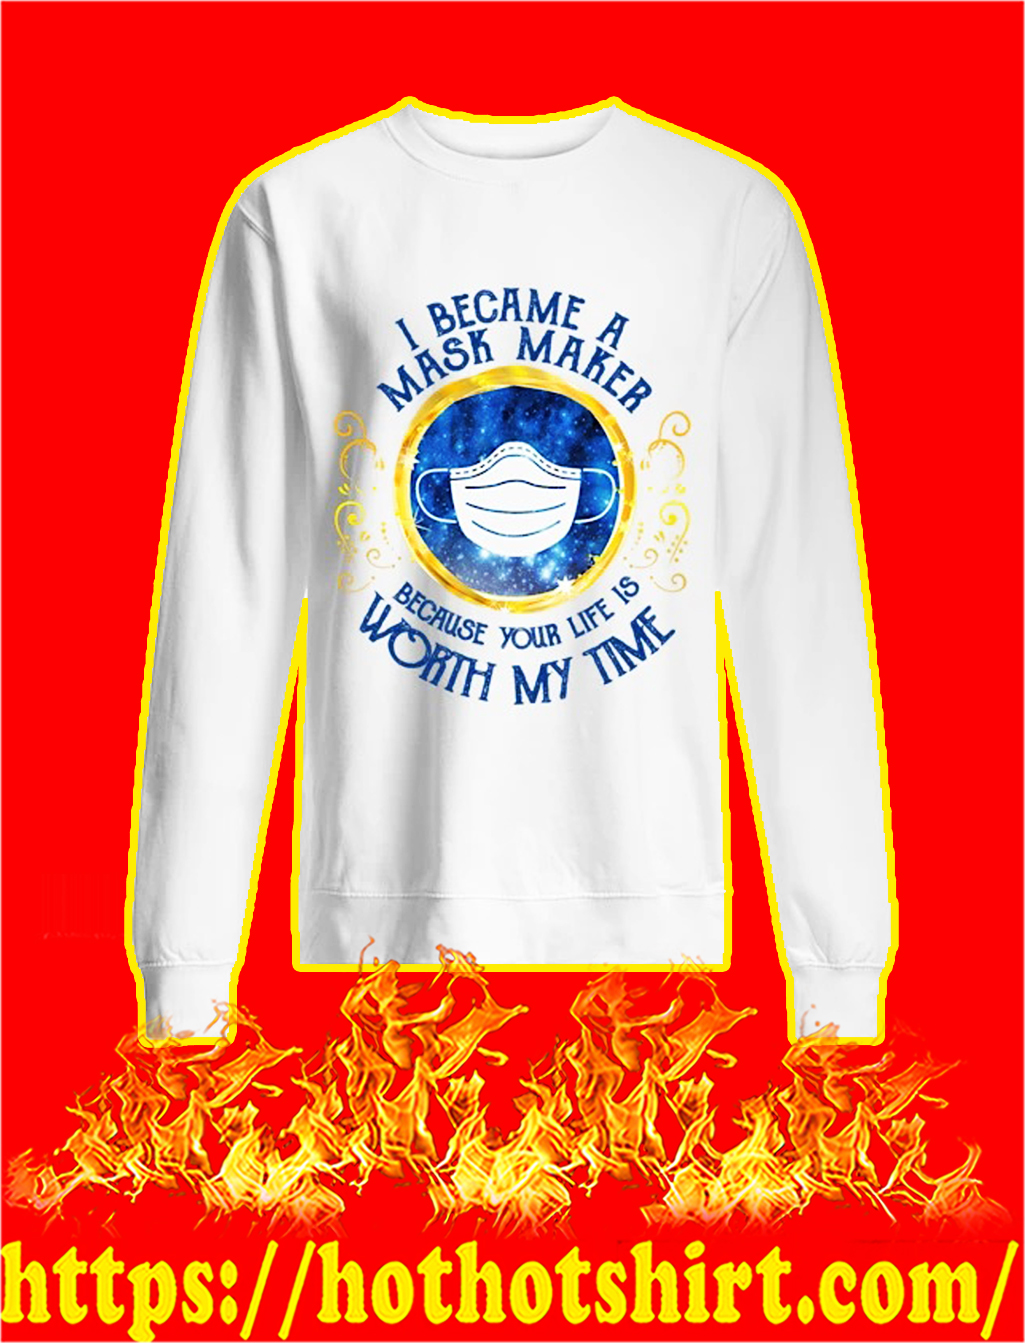 I became a mask maker because your life is worth my time sweatshirt